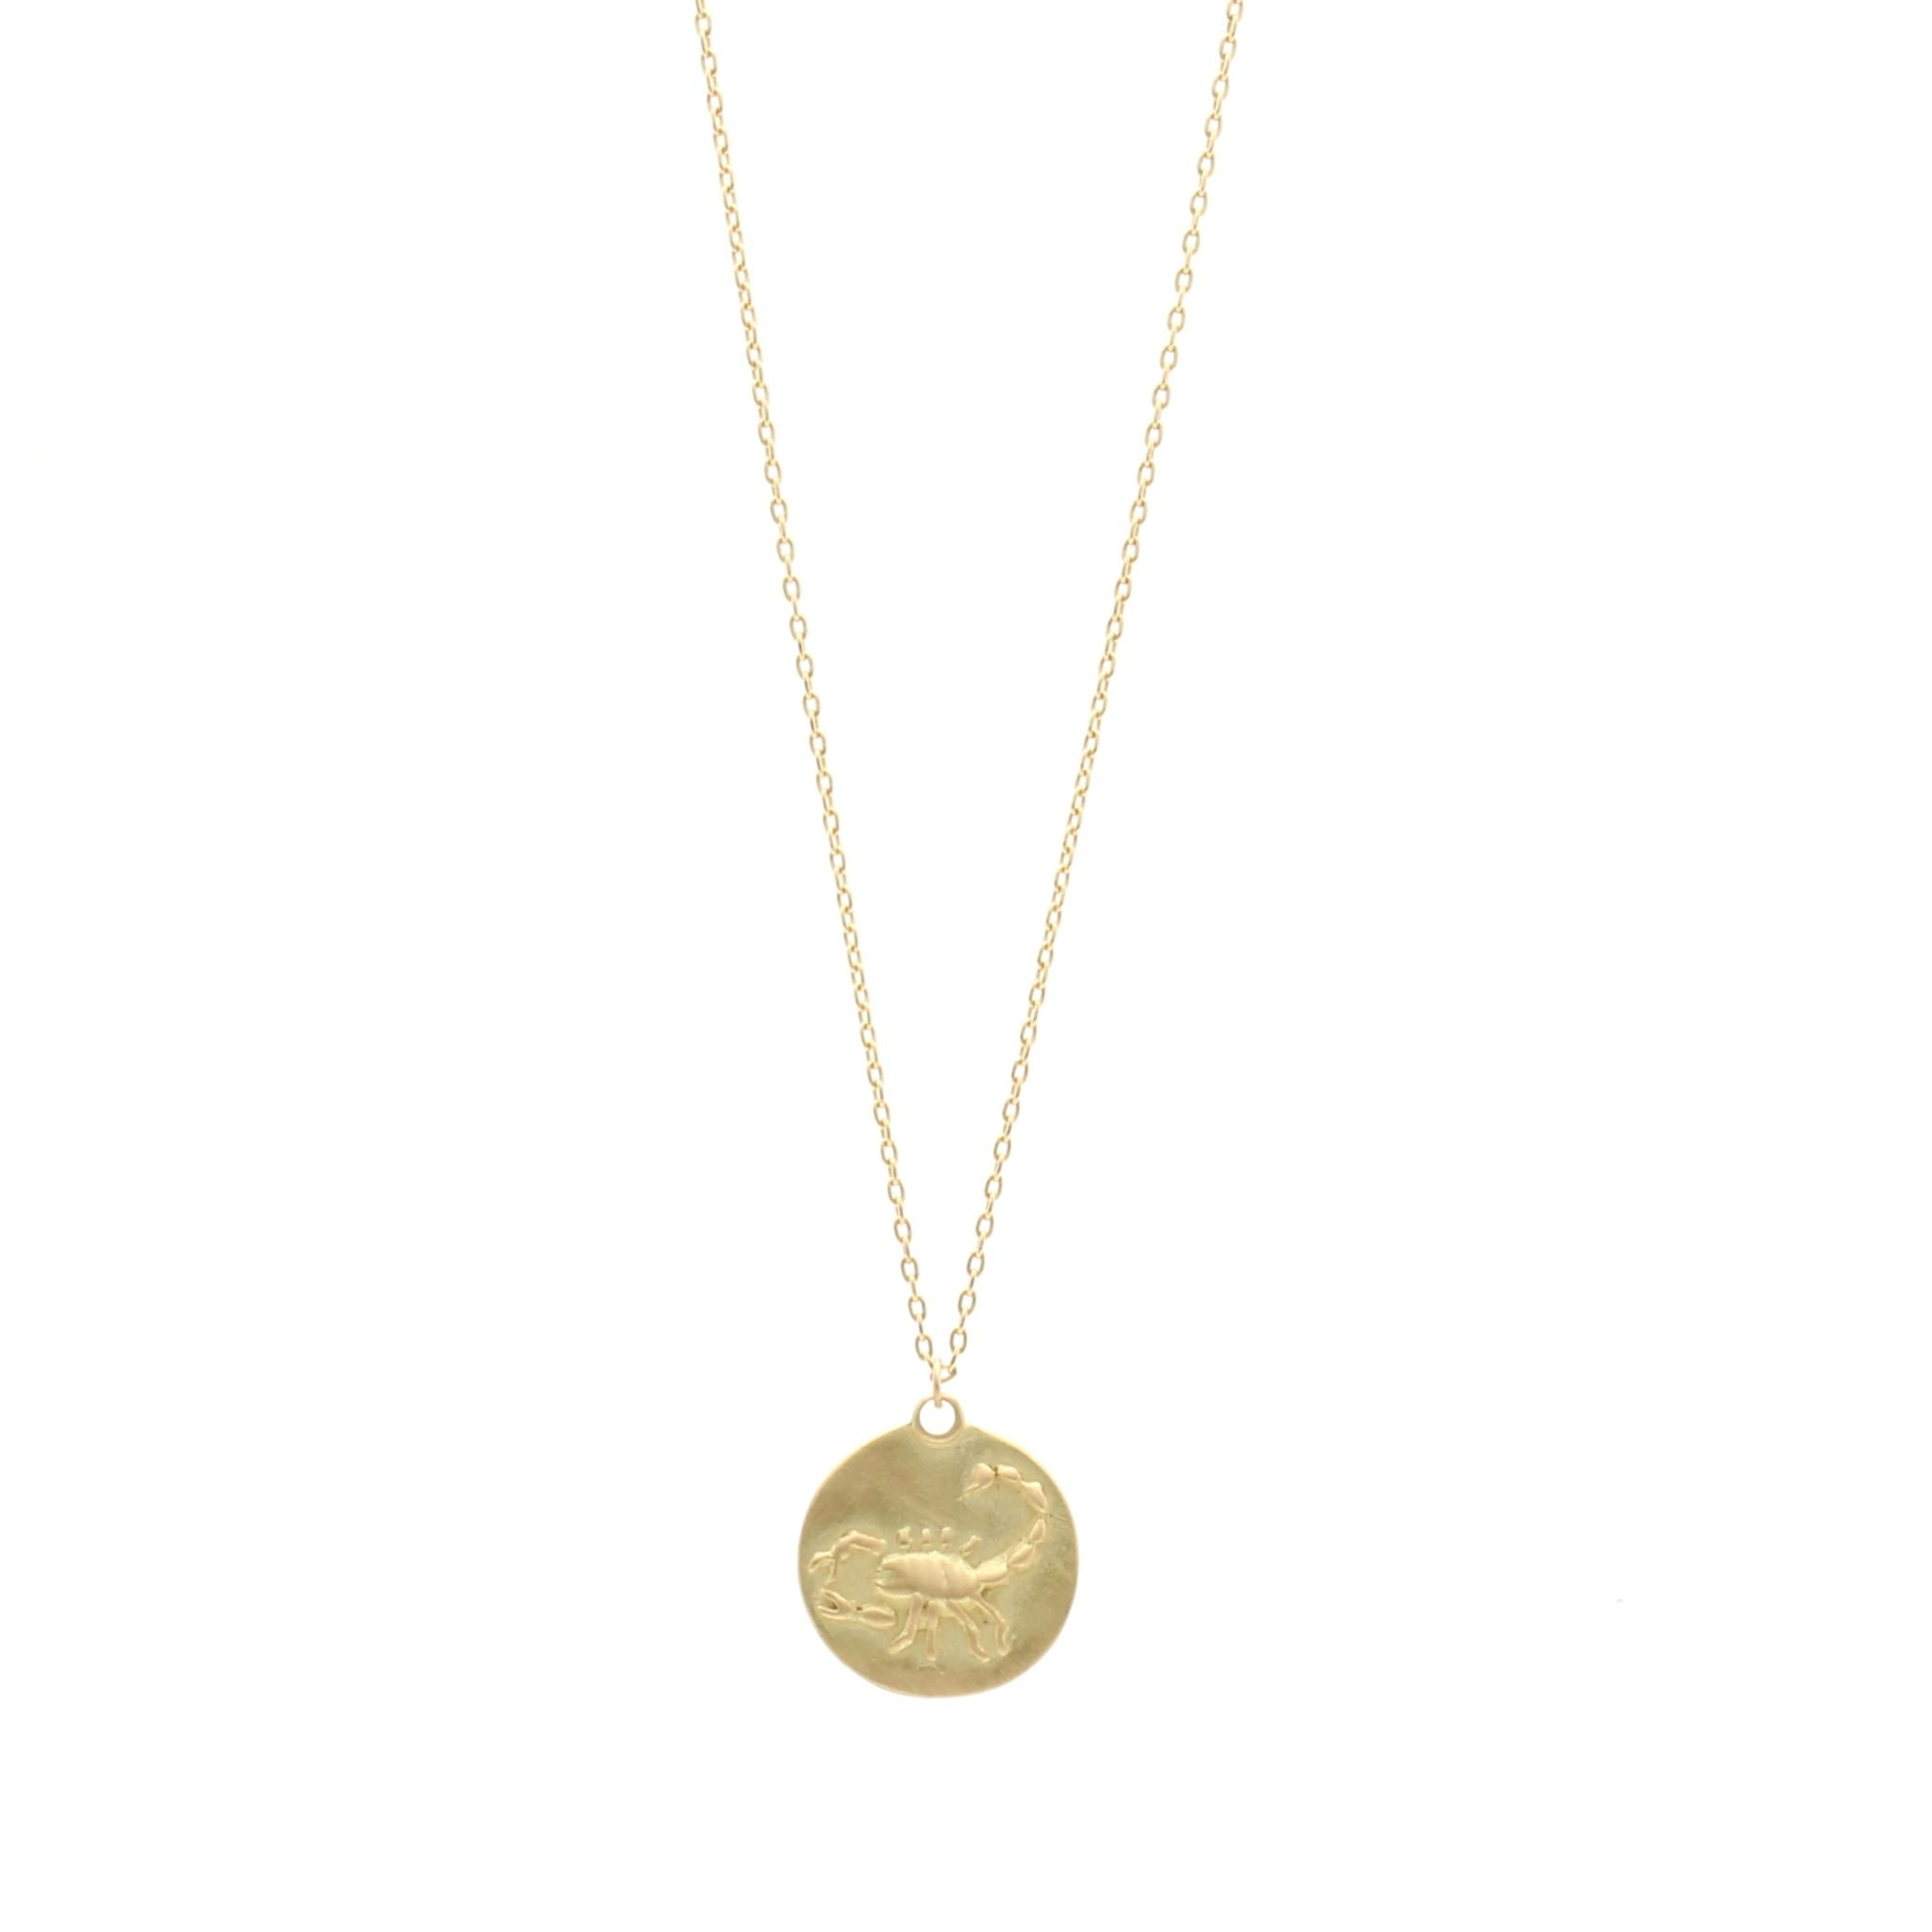 Dh jewelers san francisco shop eco friendly conflict free gold zodiac pendant mozeypictures Gallery